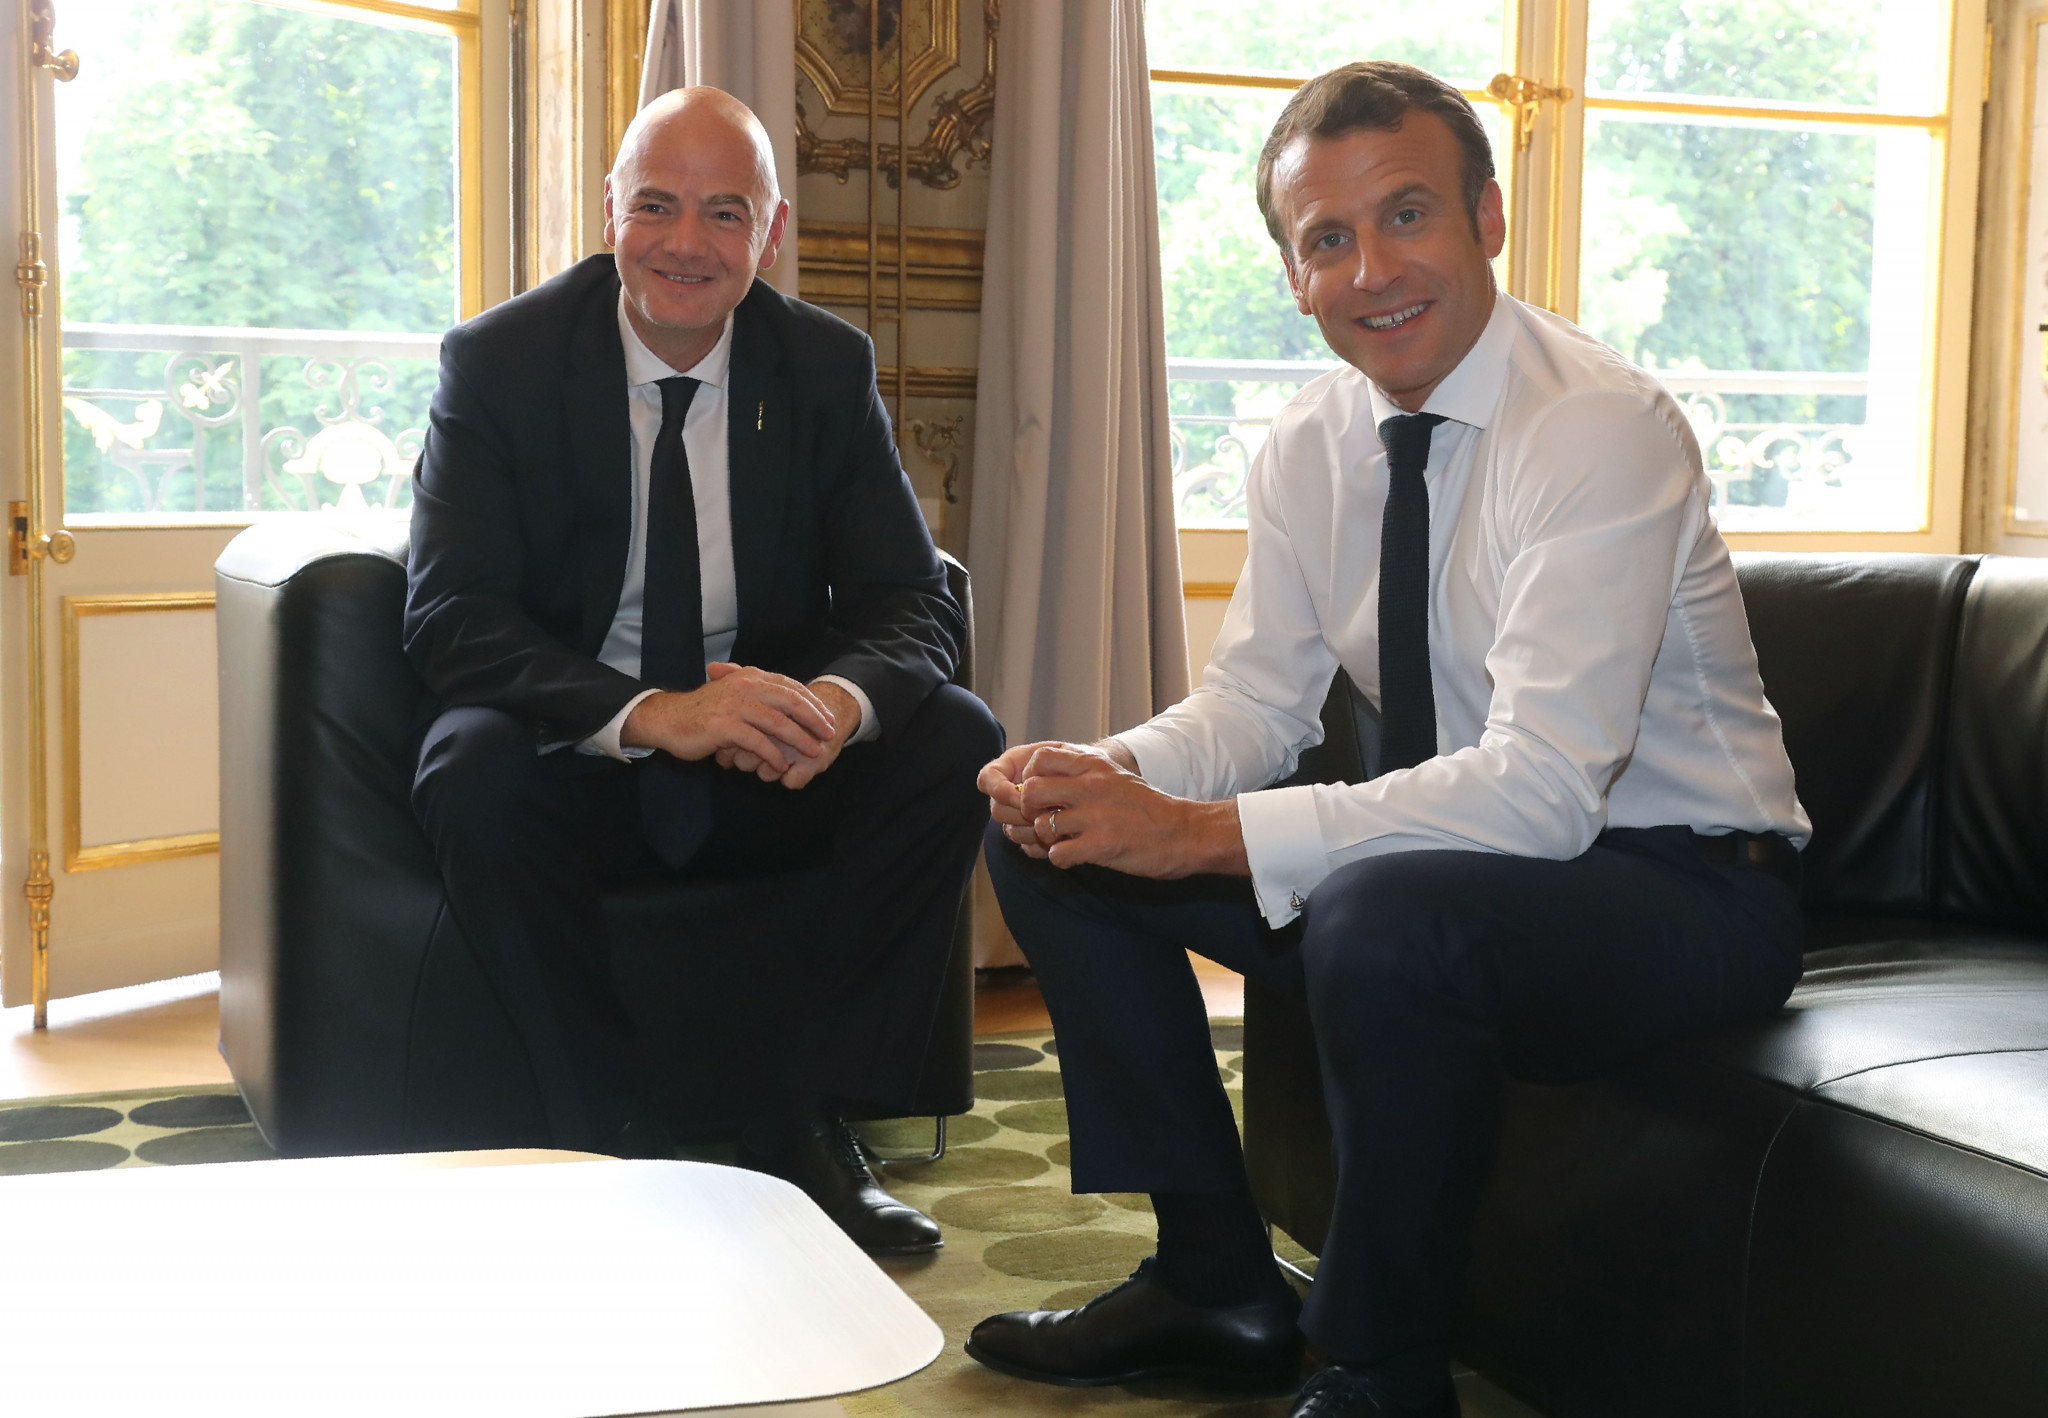 Infantino meets Macron on eve of re-election as FIFA President at Congress in Paris